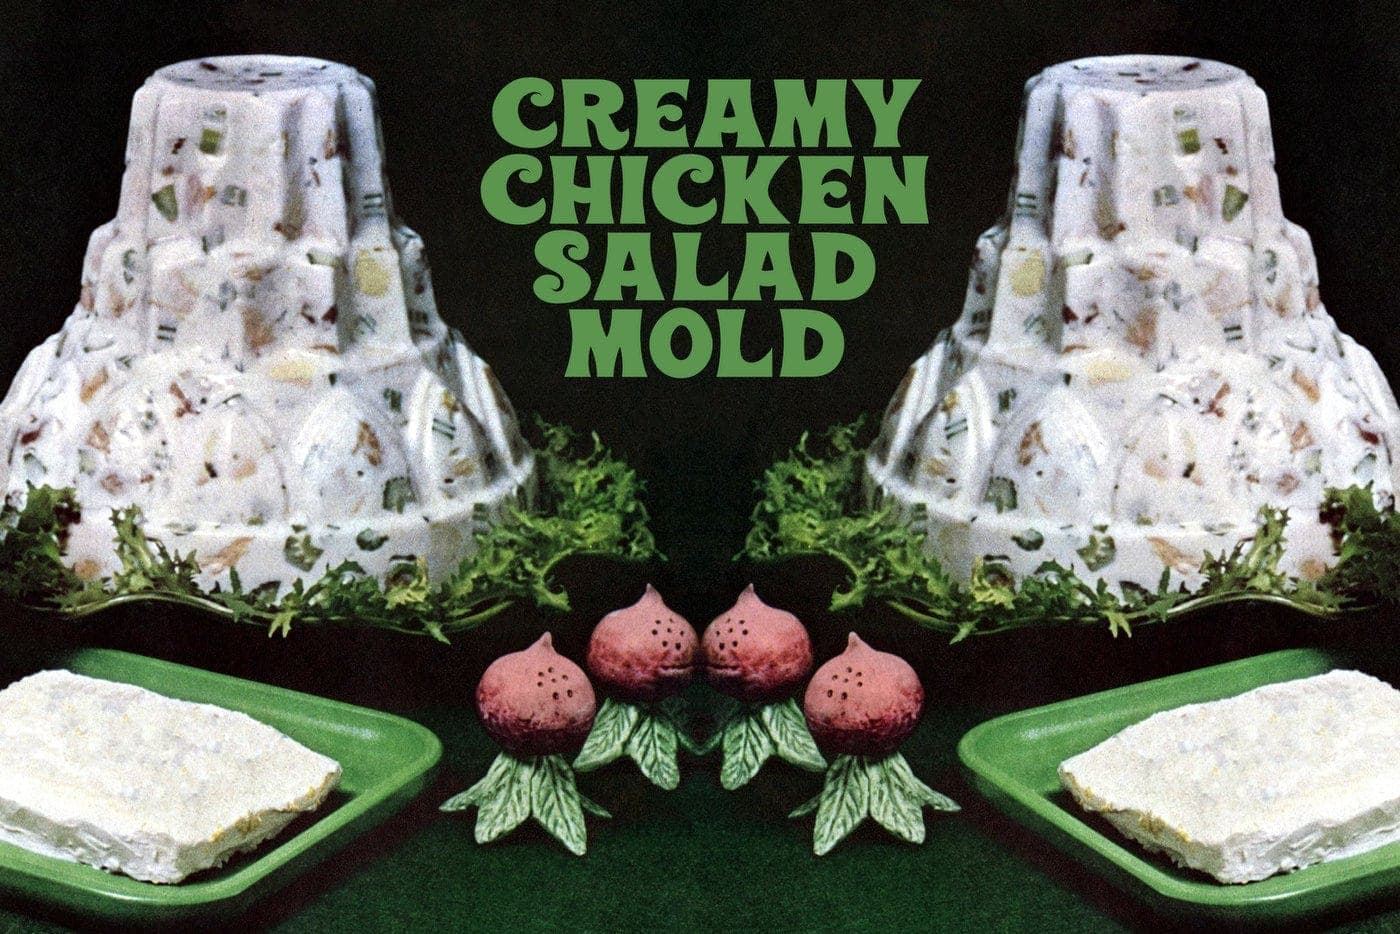 Creamy chicken salad mold